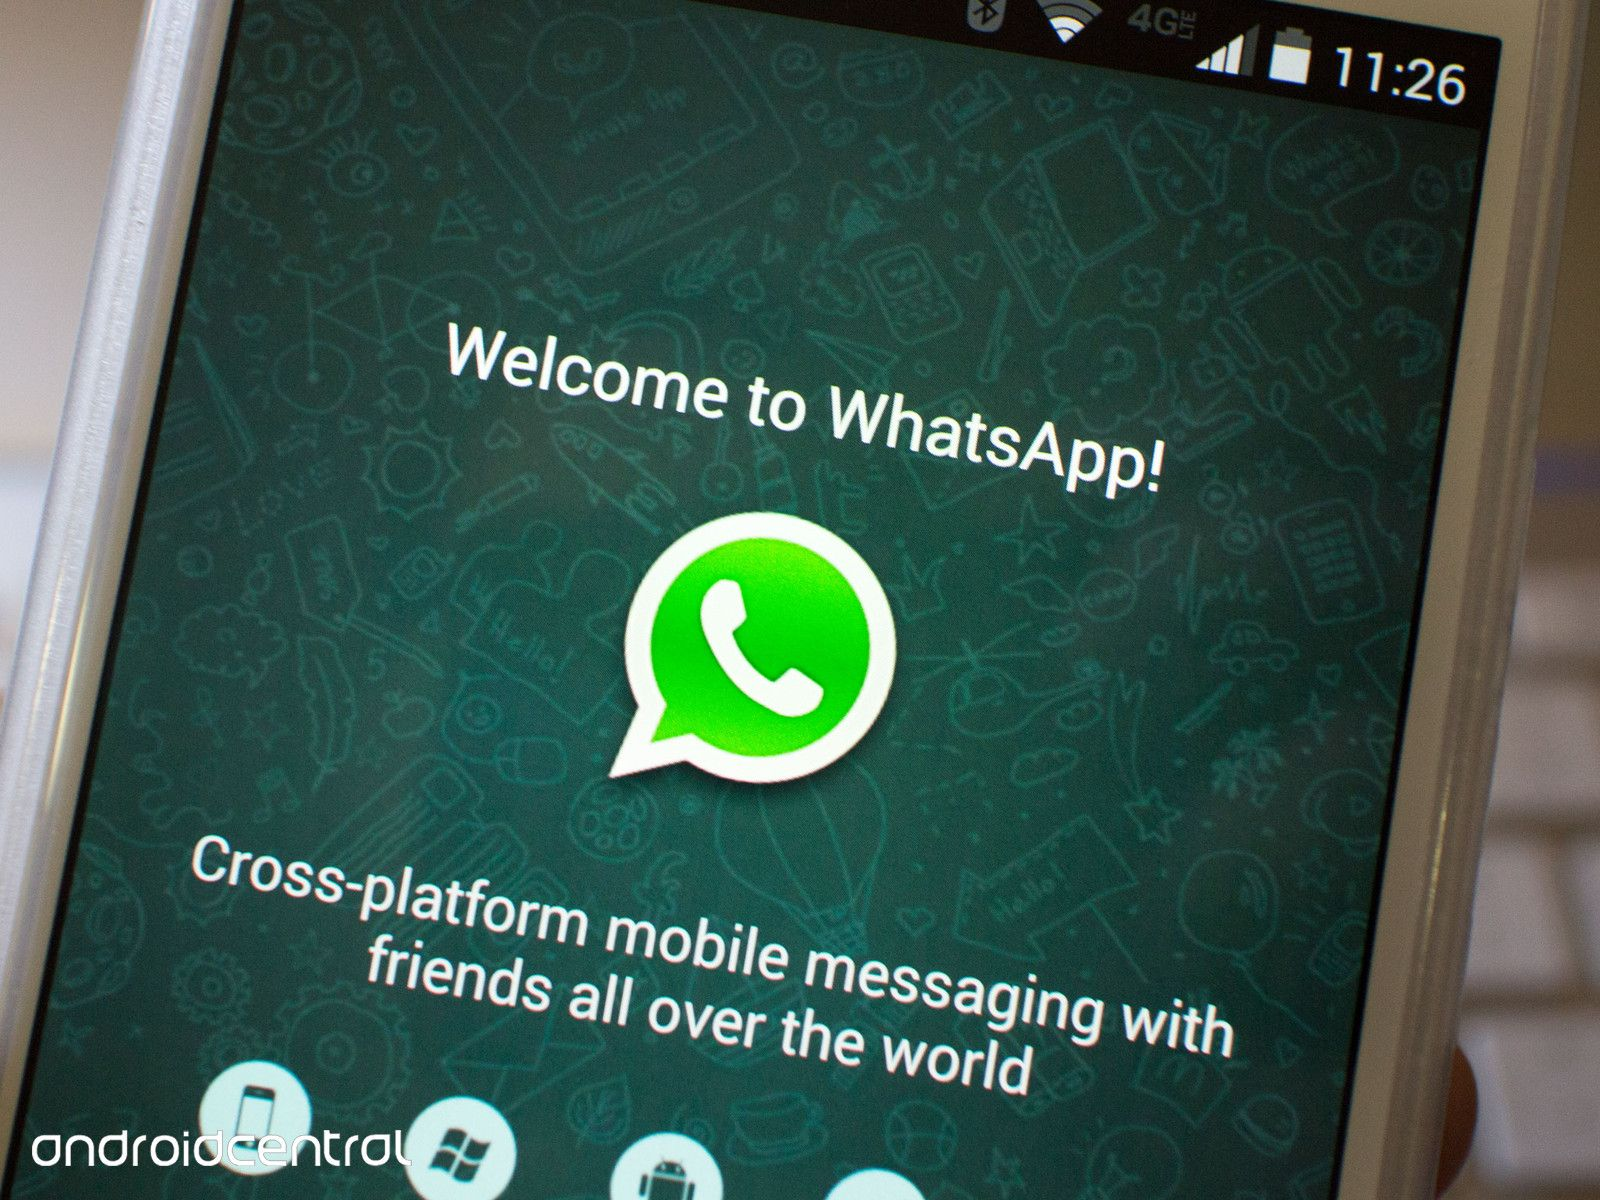 Whatsapp free Download for Android, Blackberry, Nokia Asha